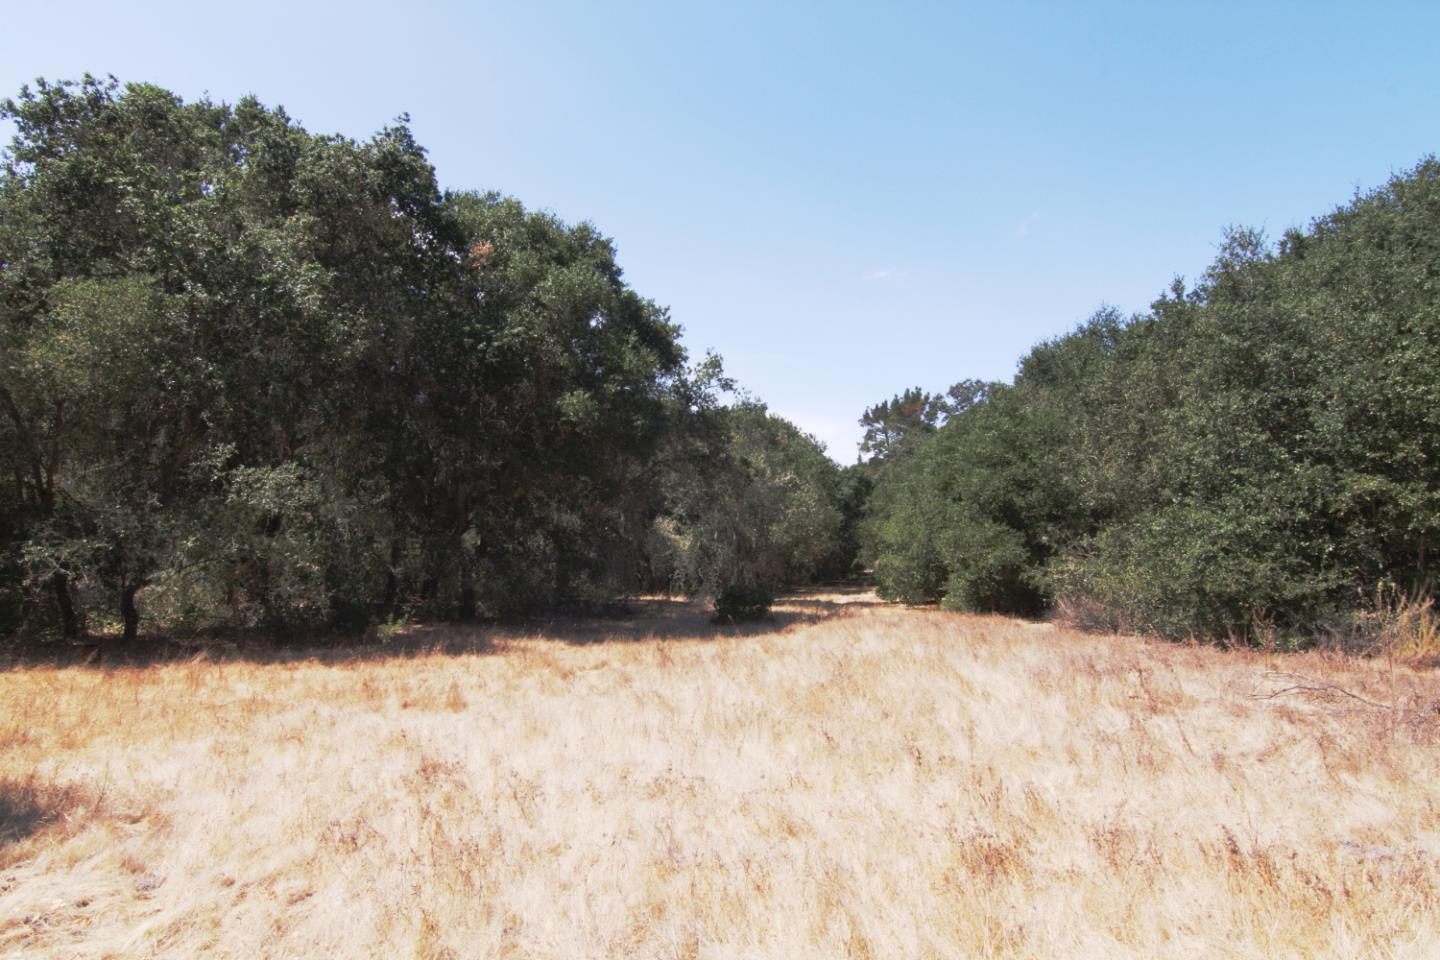 Corral de Tierra Road Other - See Remarks, CA 93908